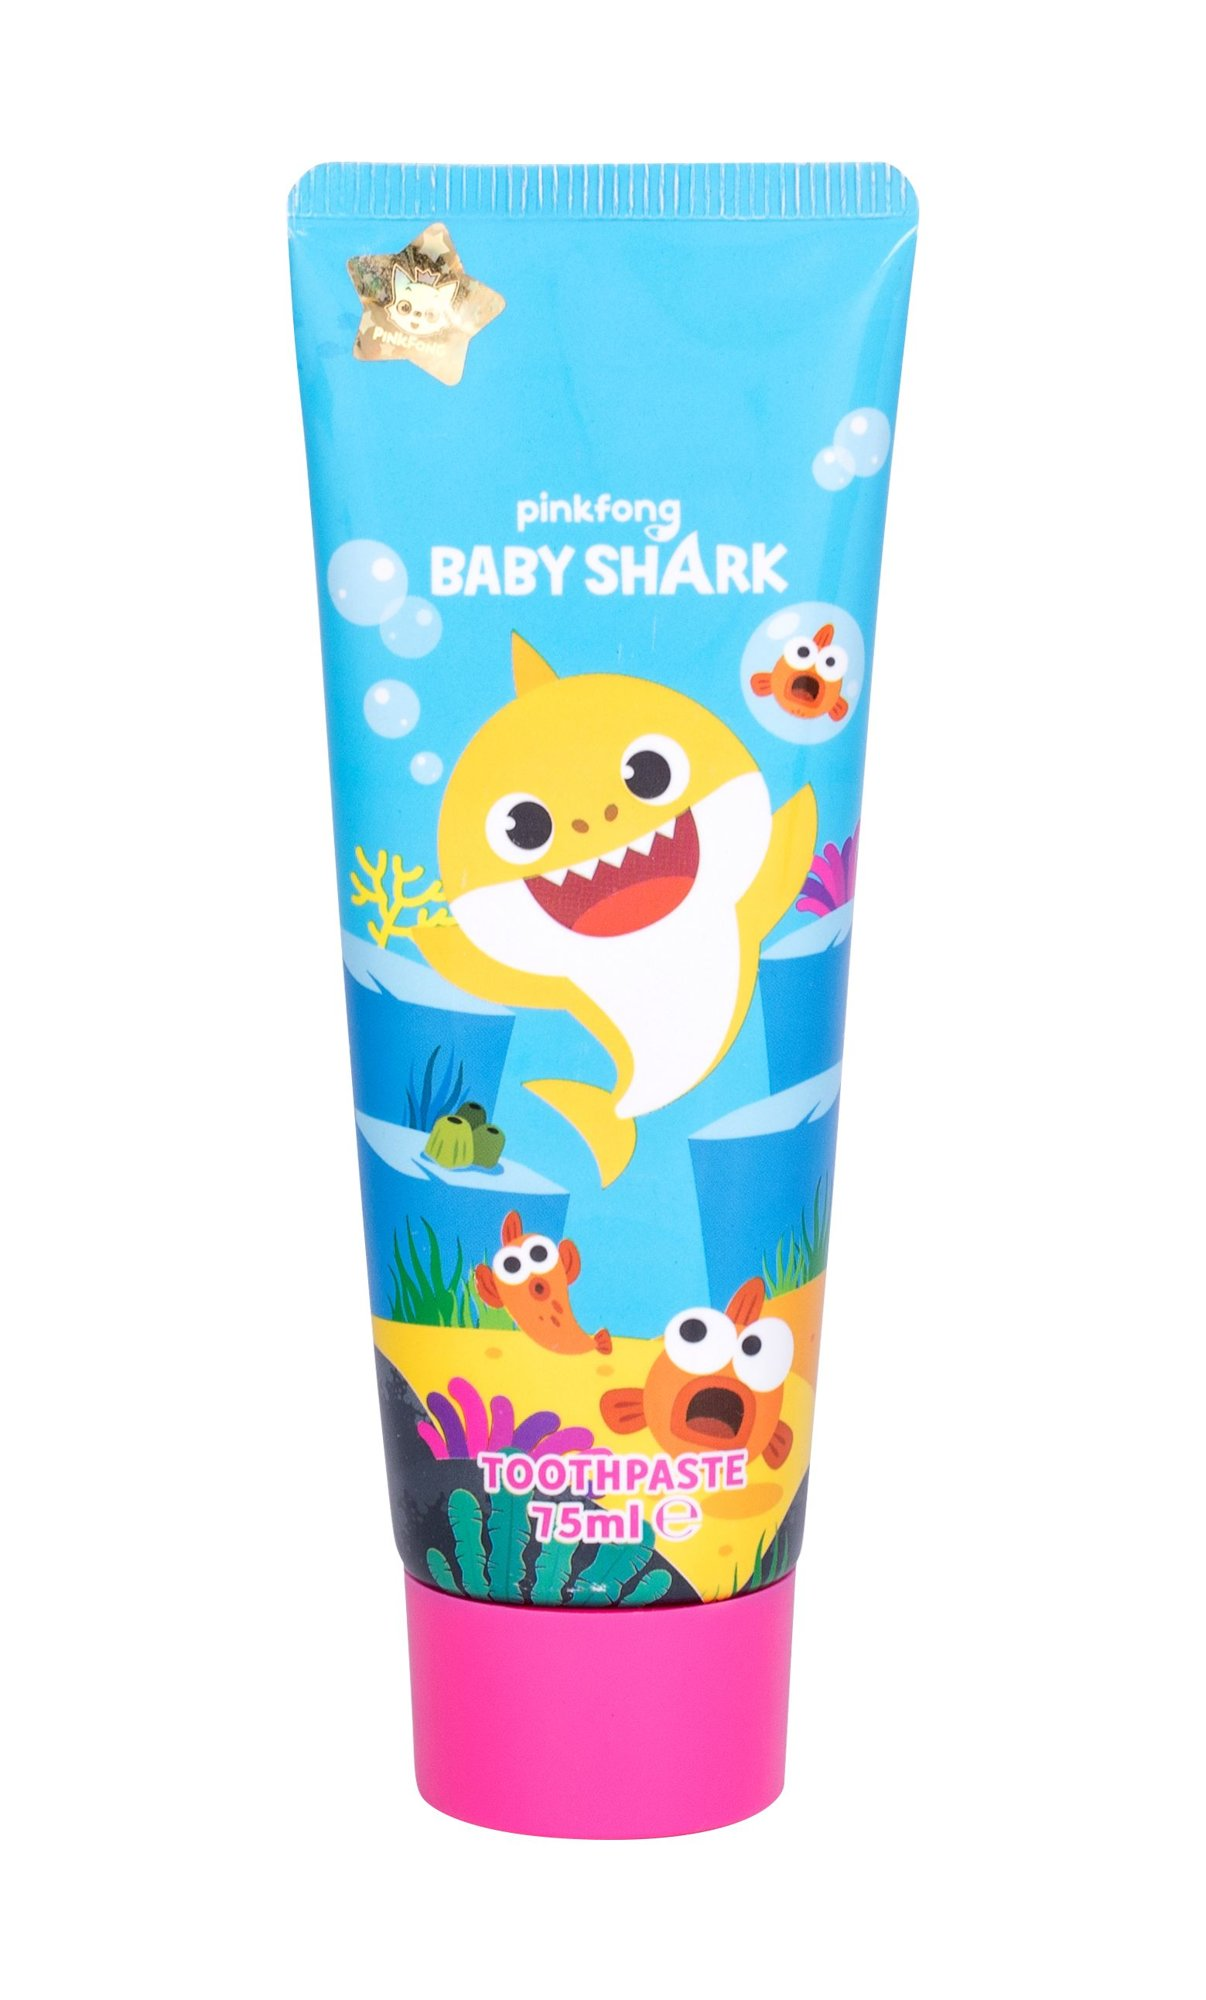 Pinkfong Baby Shark Toothpaste 75ml